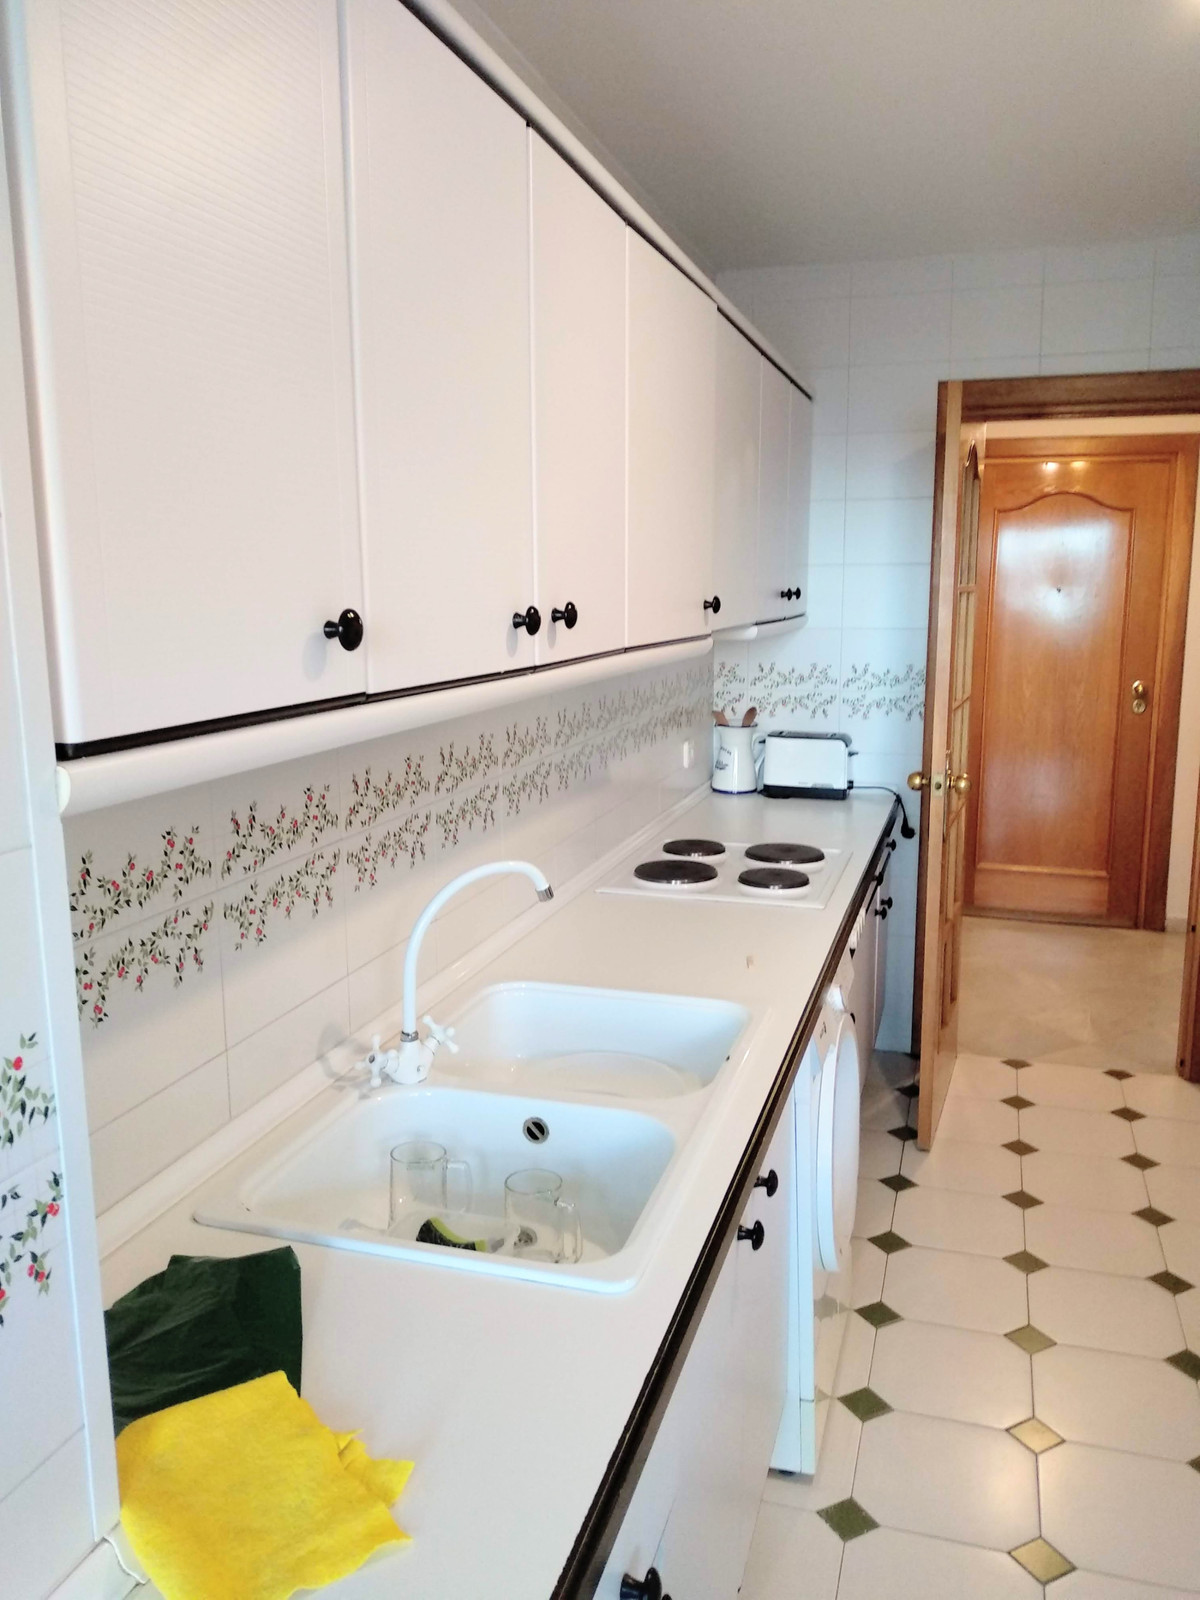 2 Bedroom Apartment for sale La Carihuela